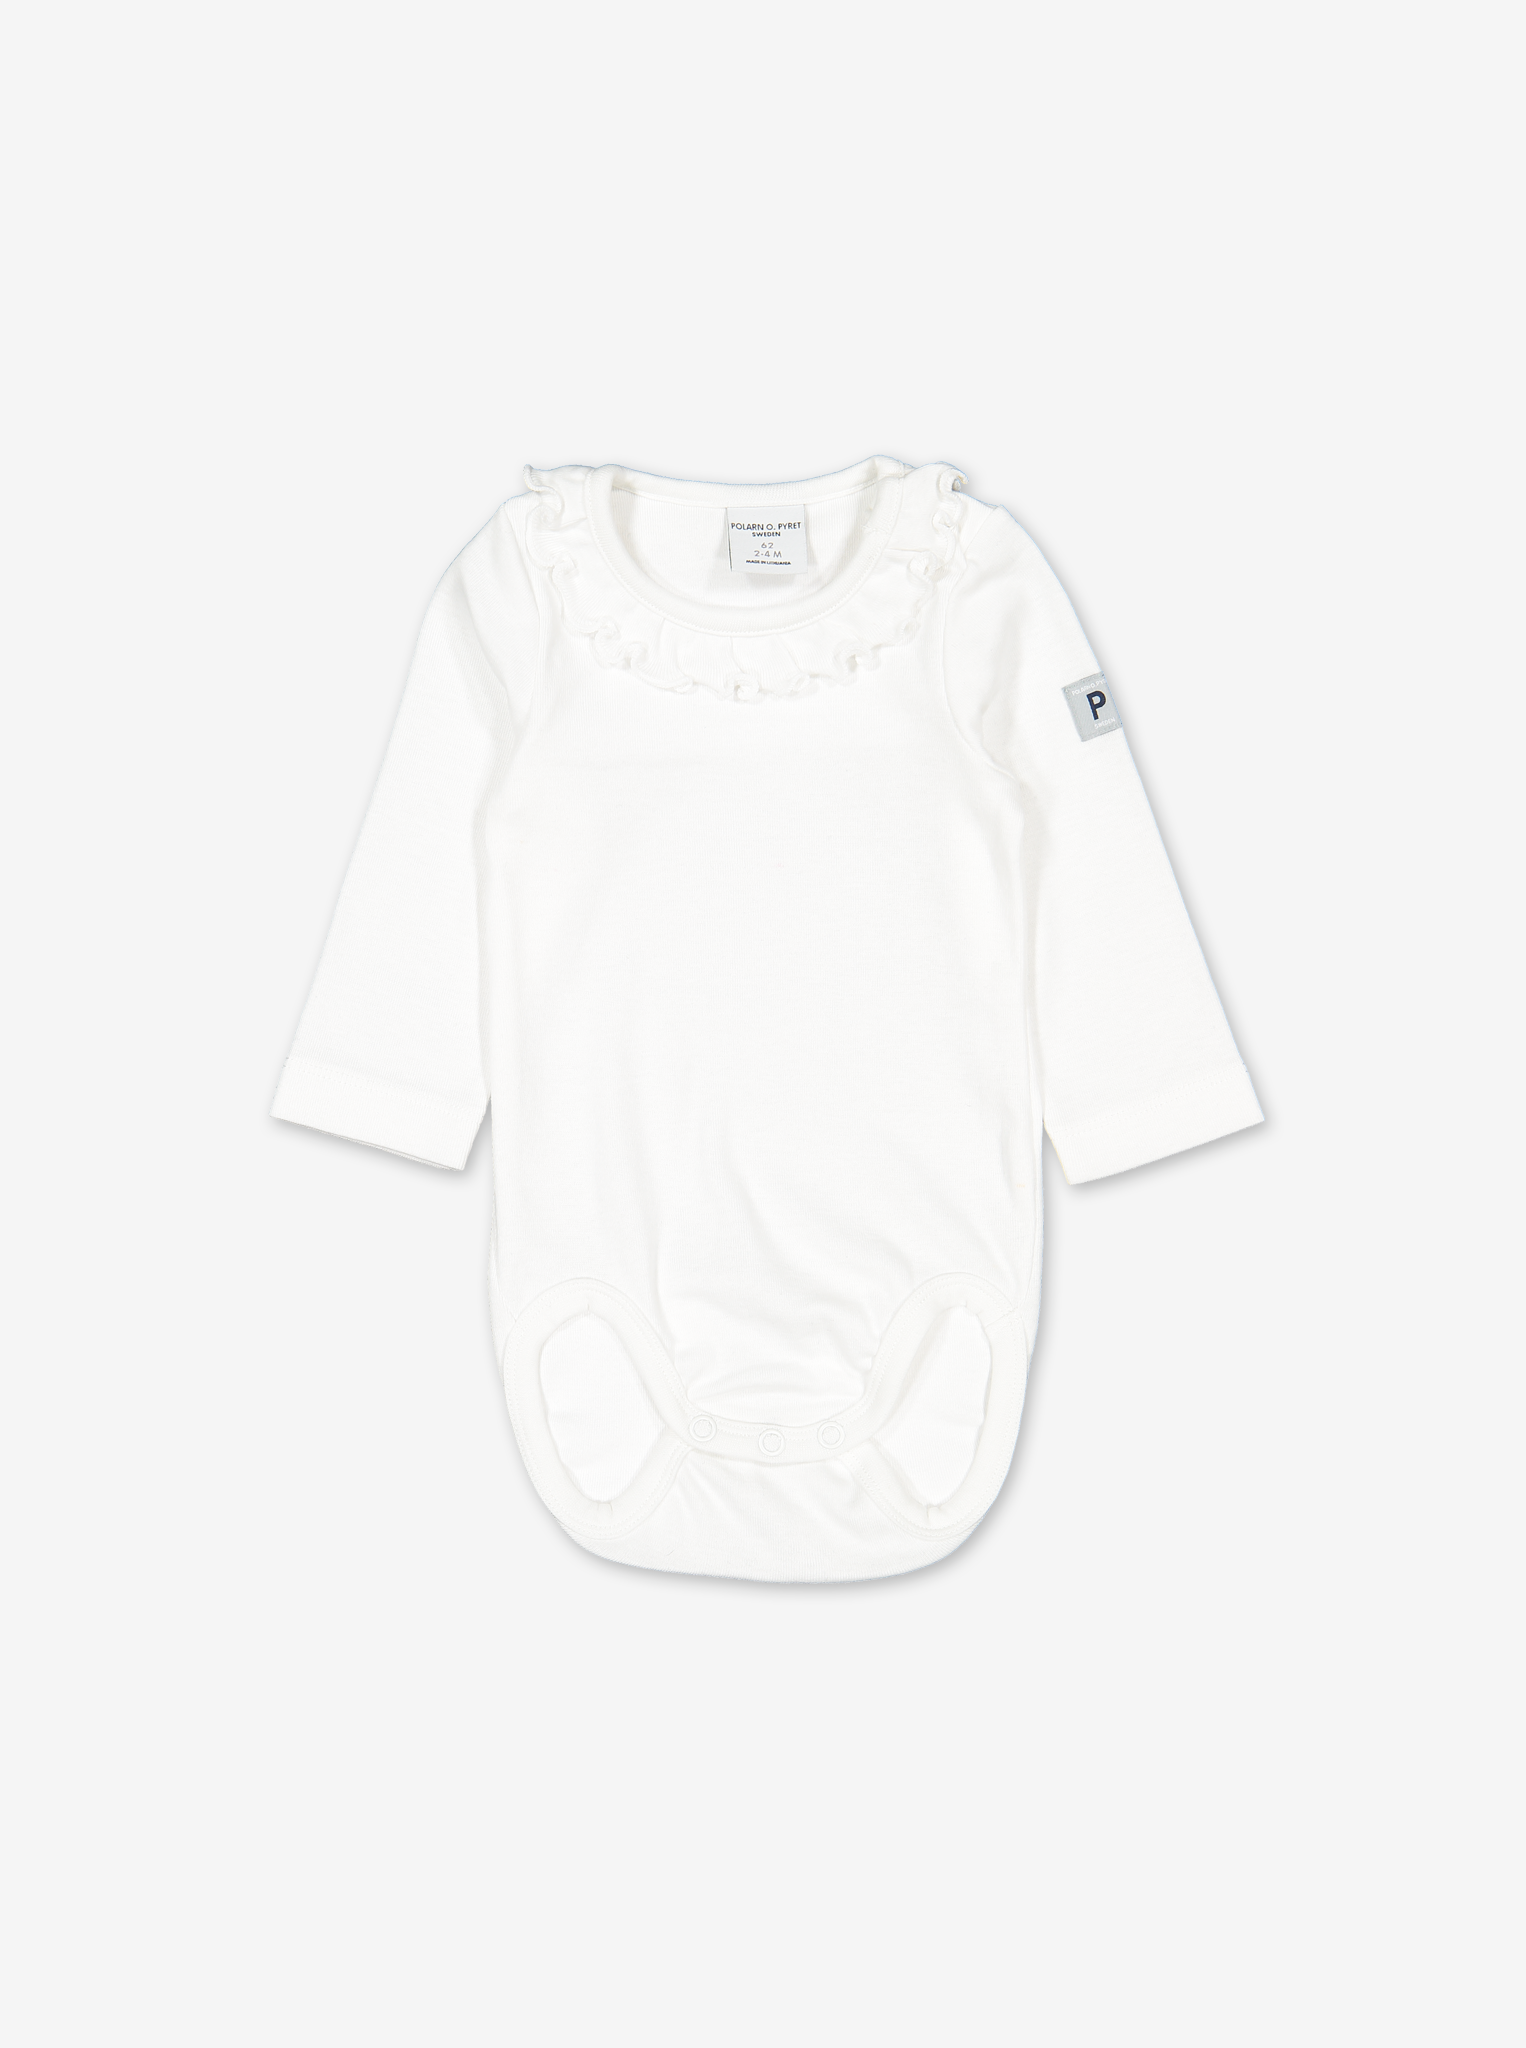 Front view of a white ruffled organic baby grows for babies and toddlers, made with 100% organic cotton.